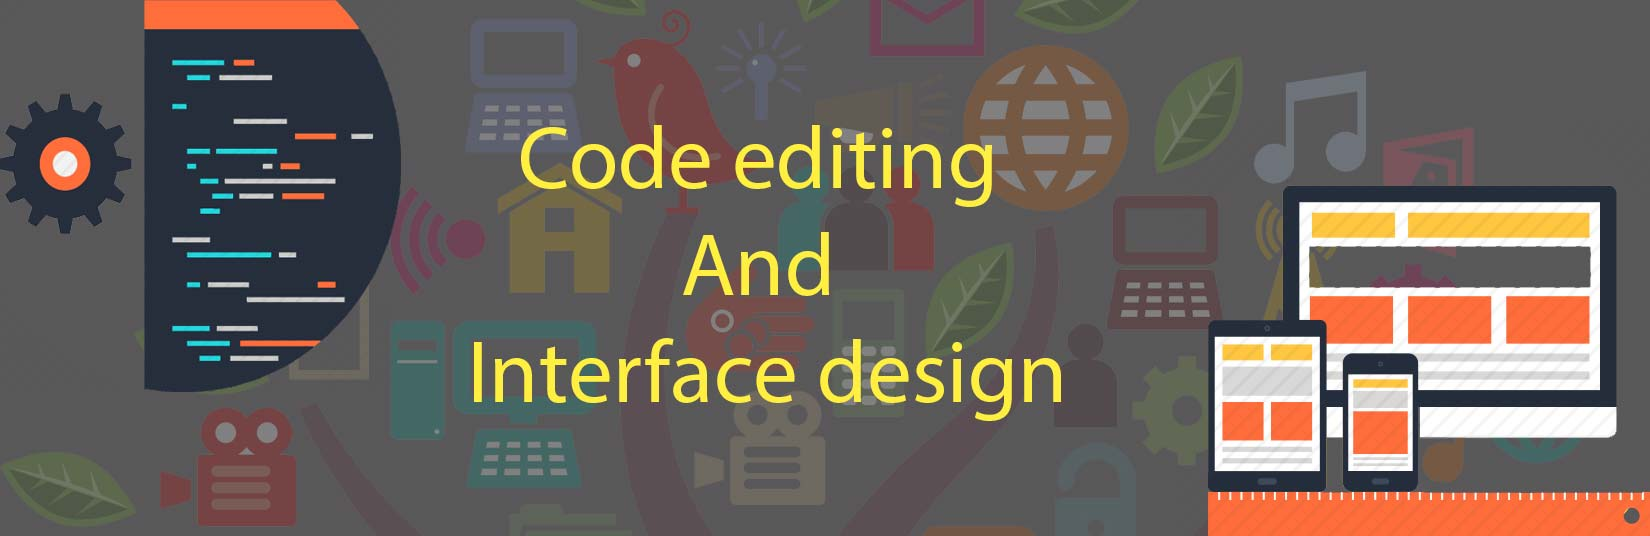 Code editing and interface design